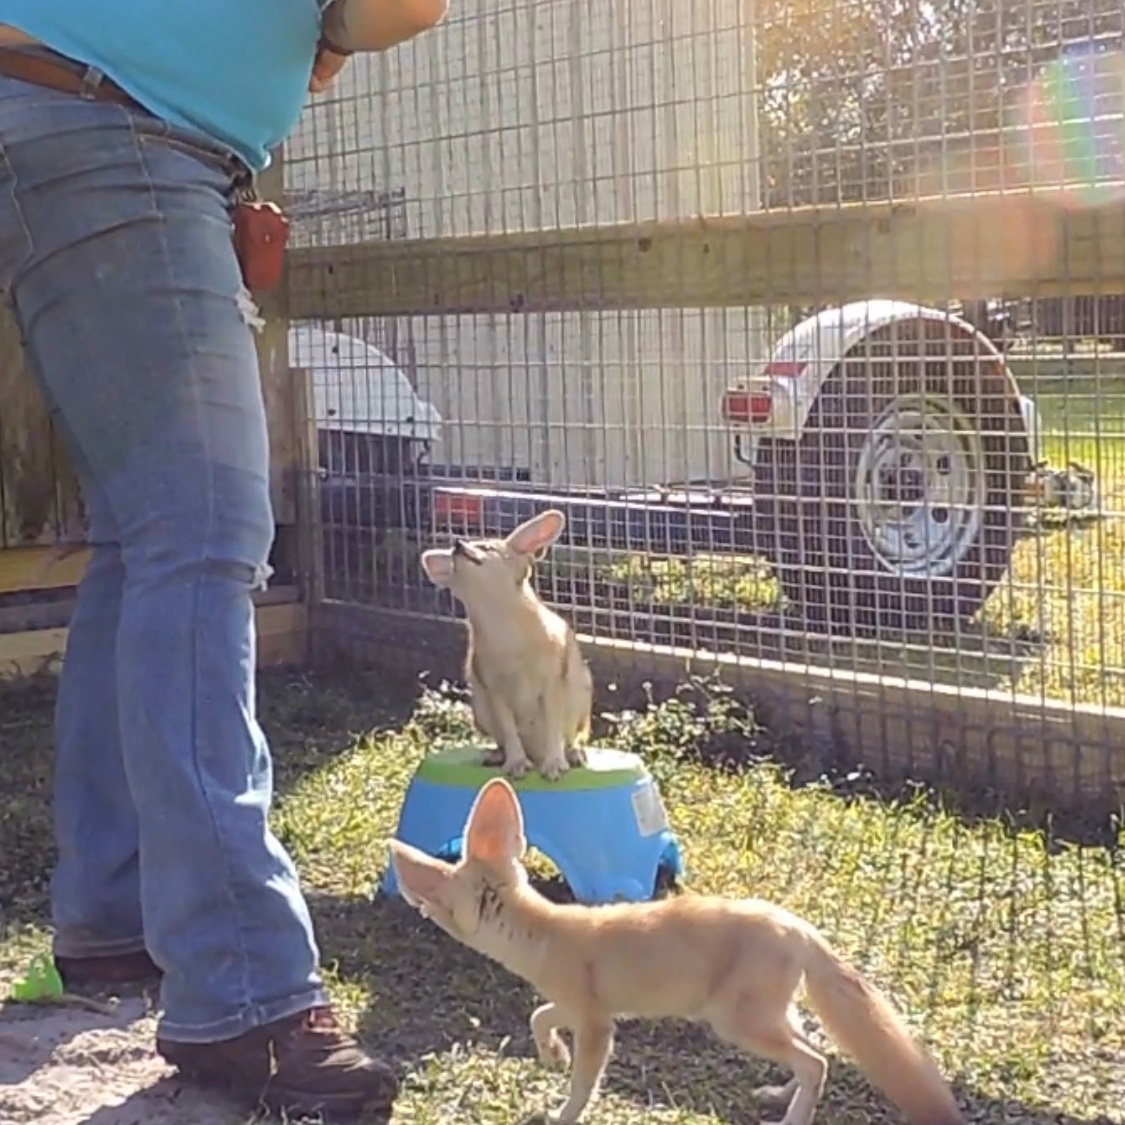 Instead of running out the door when it opens, Speedy, a Fennec Fox, is learning to run and sit on his stool instead.